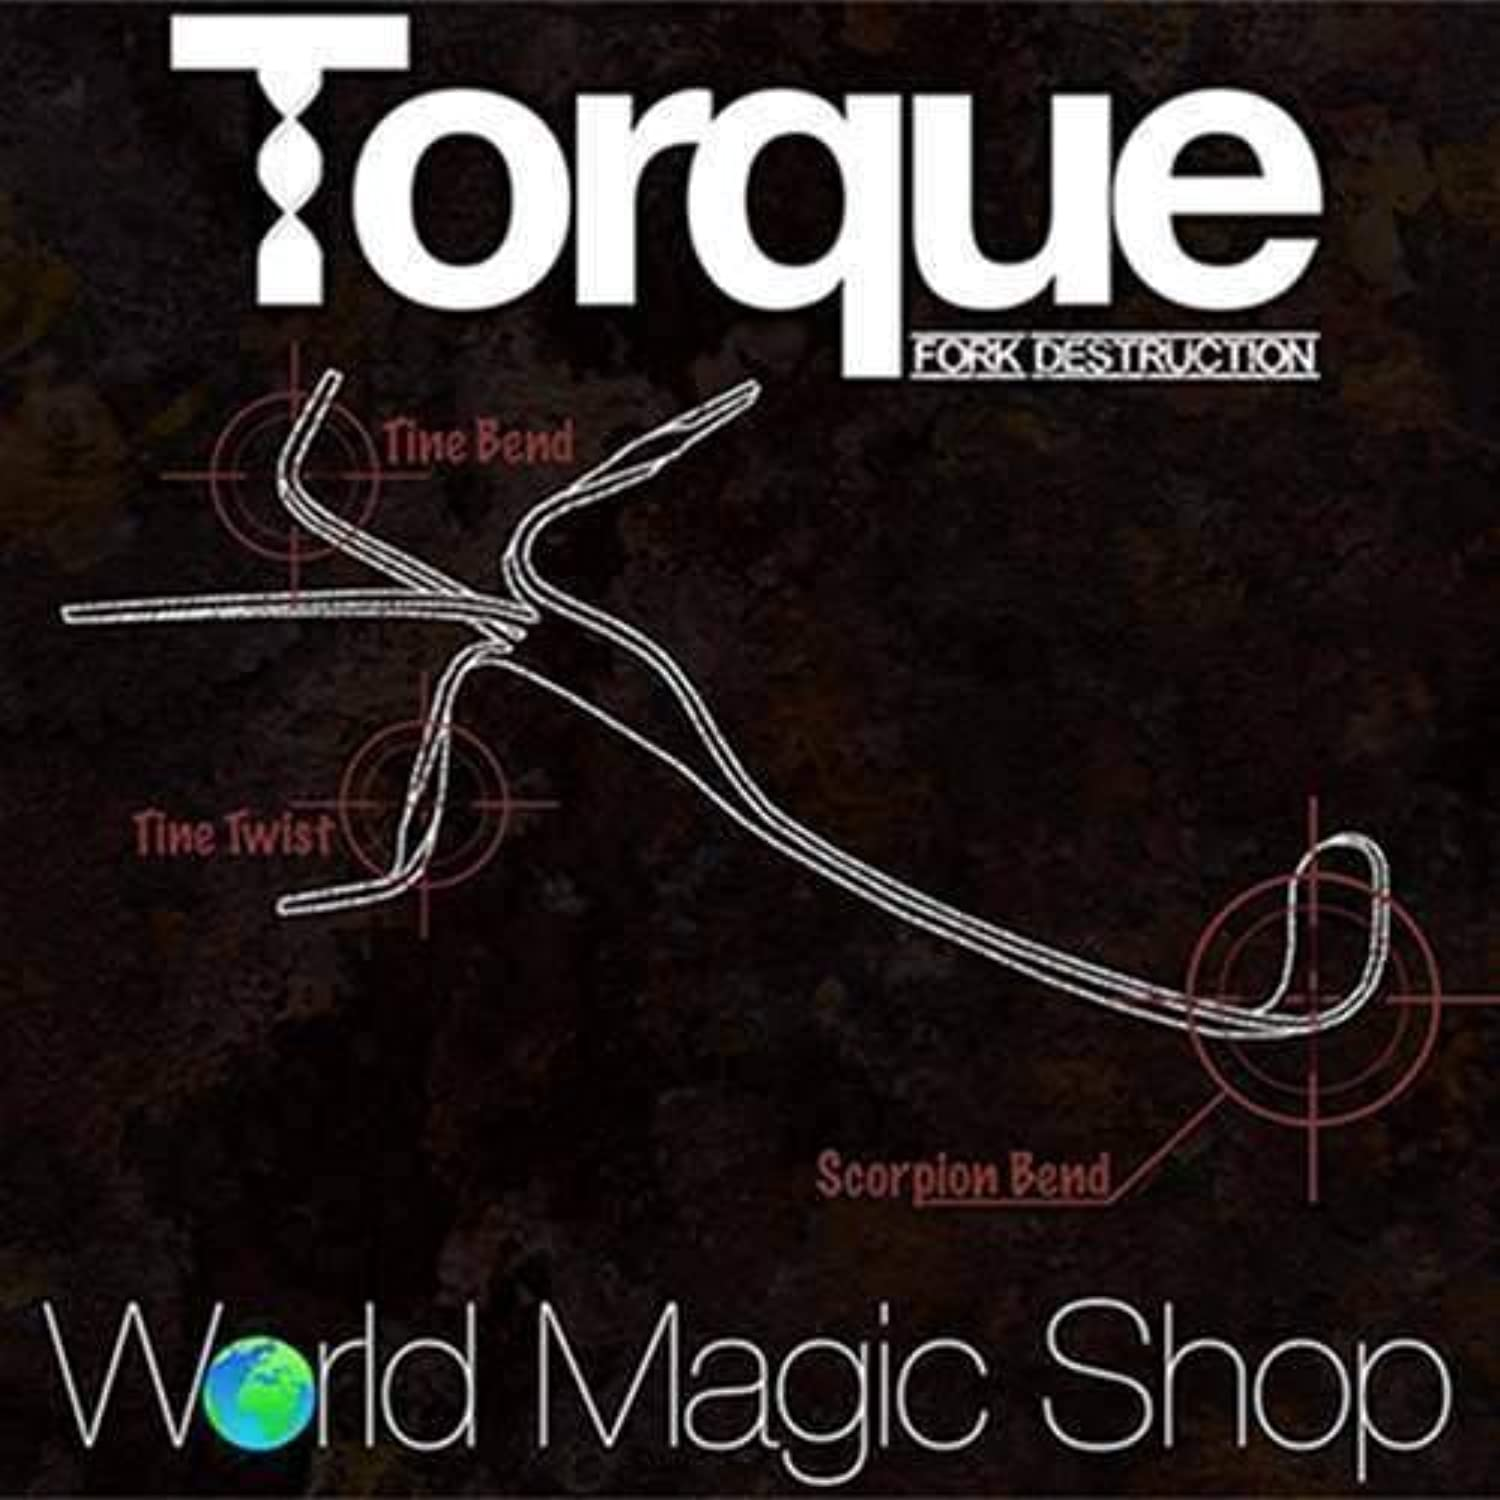 SOLOMAGIA Torque Torque Torque (Gimmick and Online Instructions) by